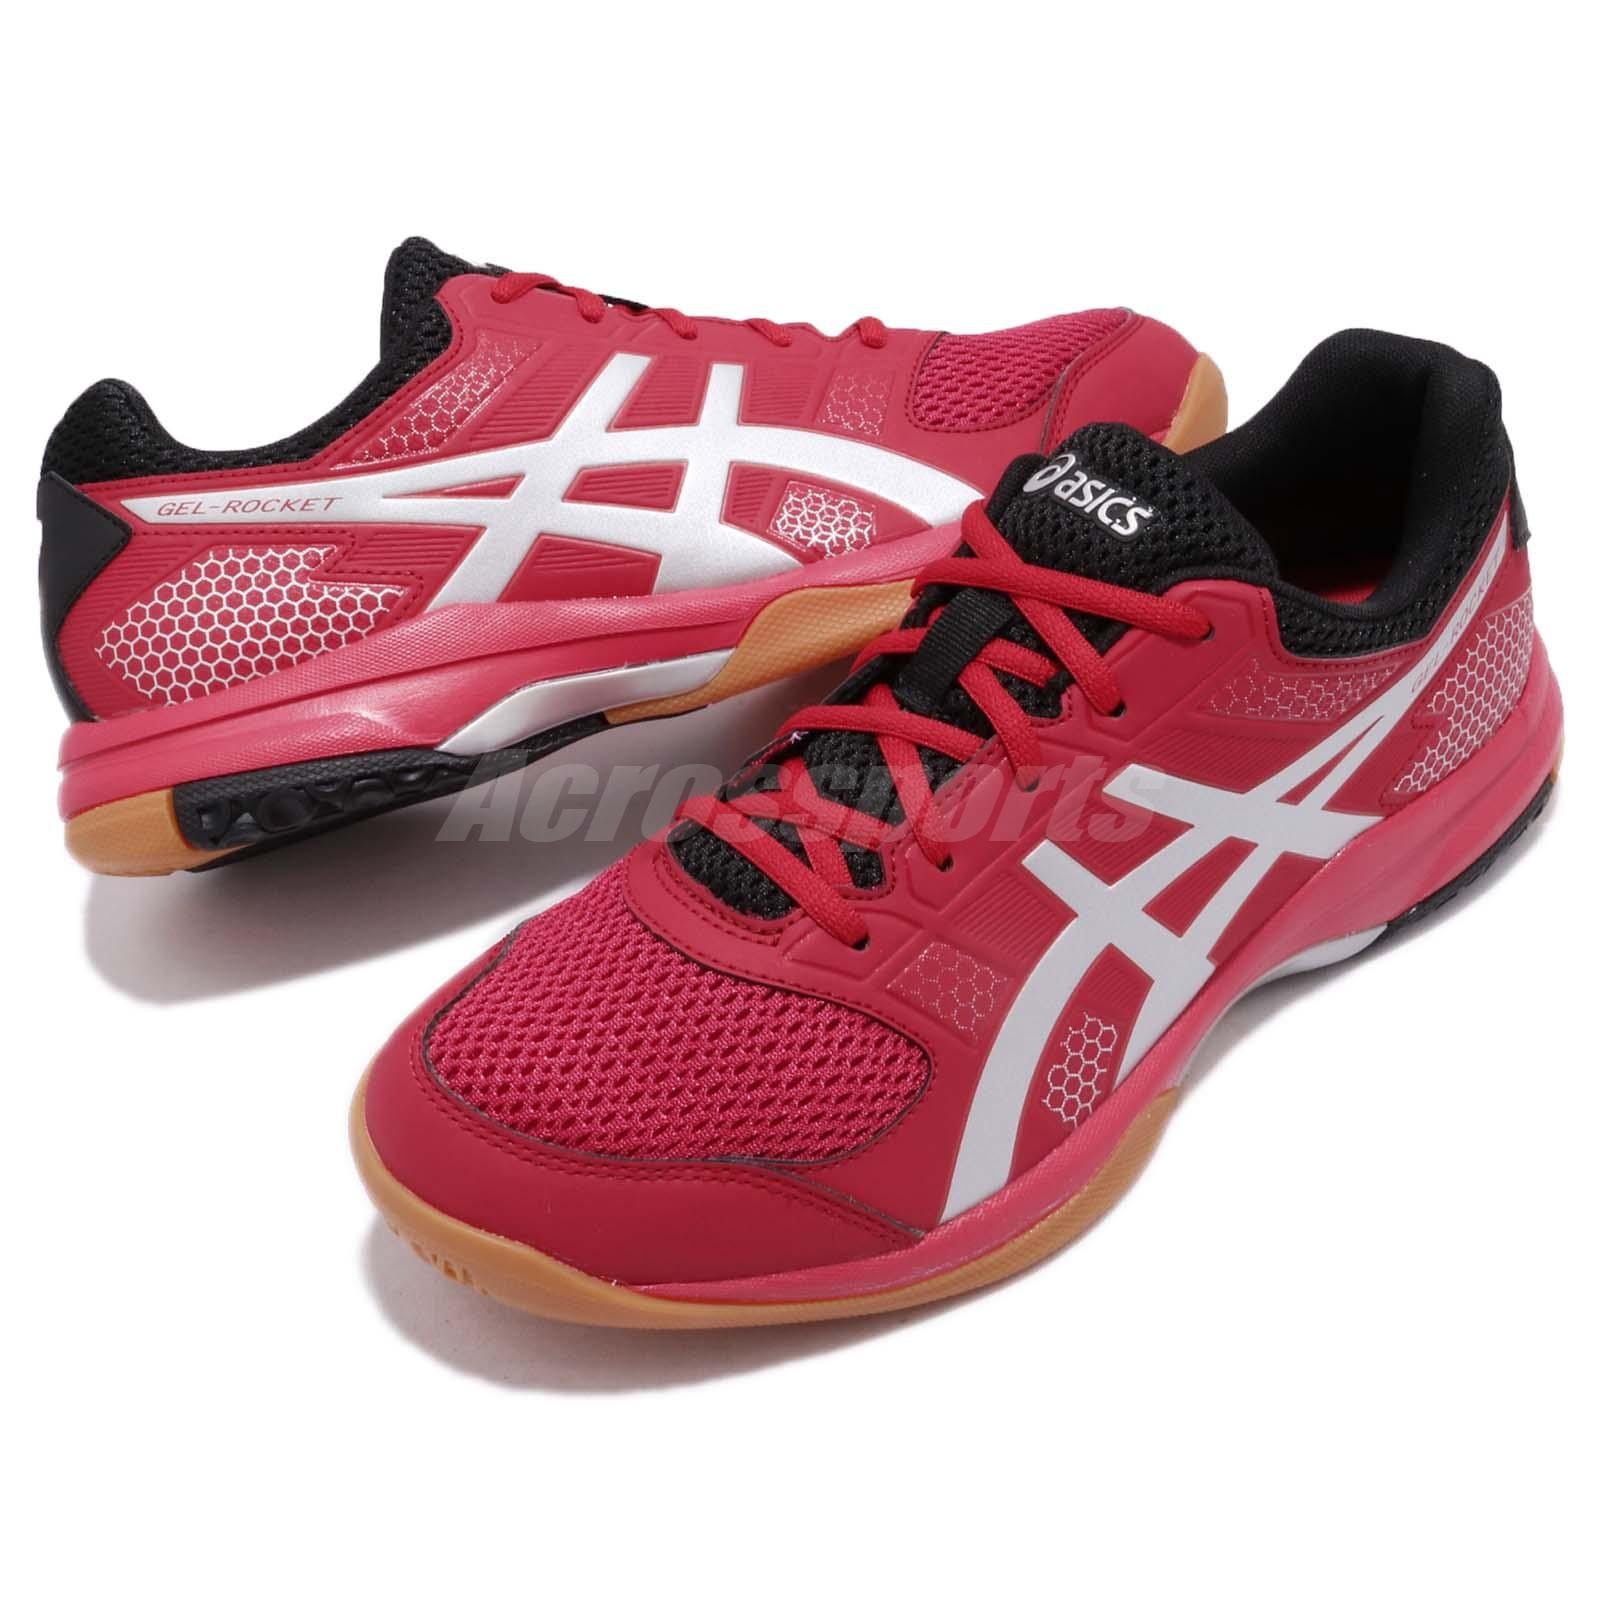 3e5522299d Details about Asics Gel-Rocket 8 Samba Red Silver Gum Men Volleyball  Badminton Shoes B706Y-600